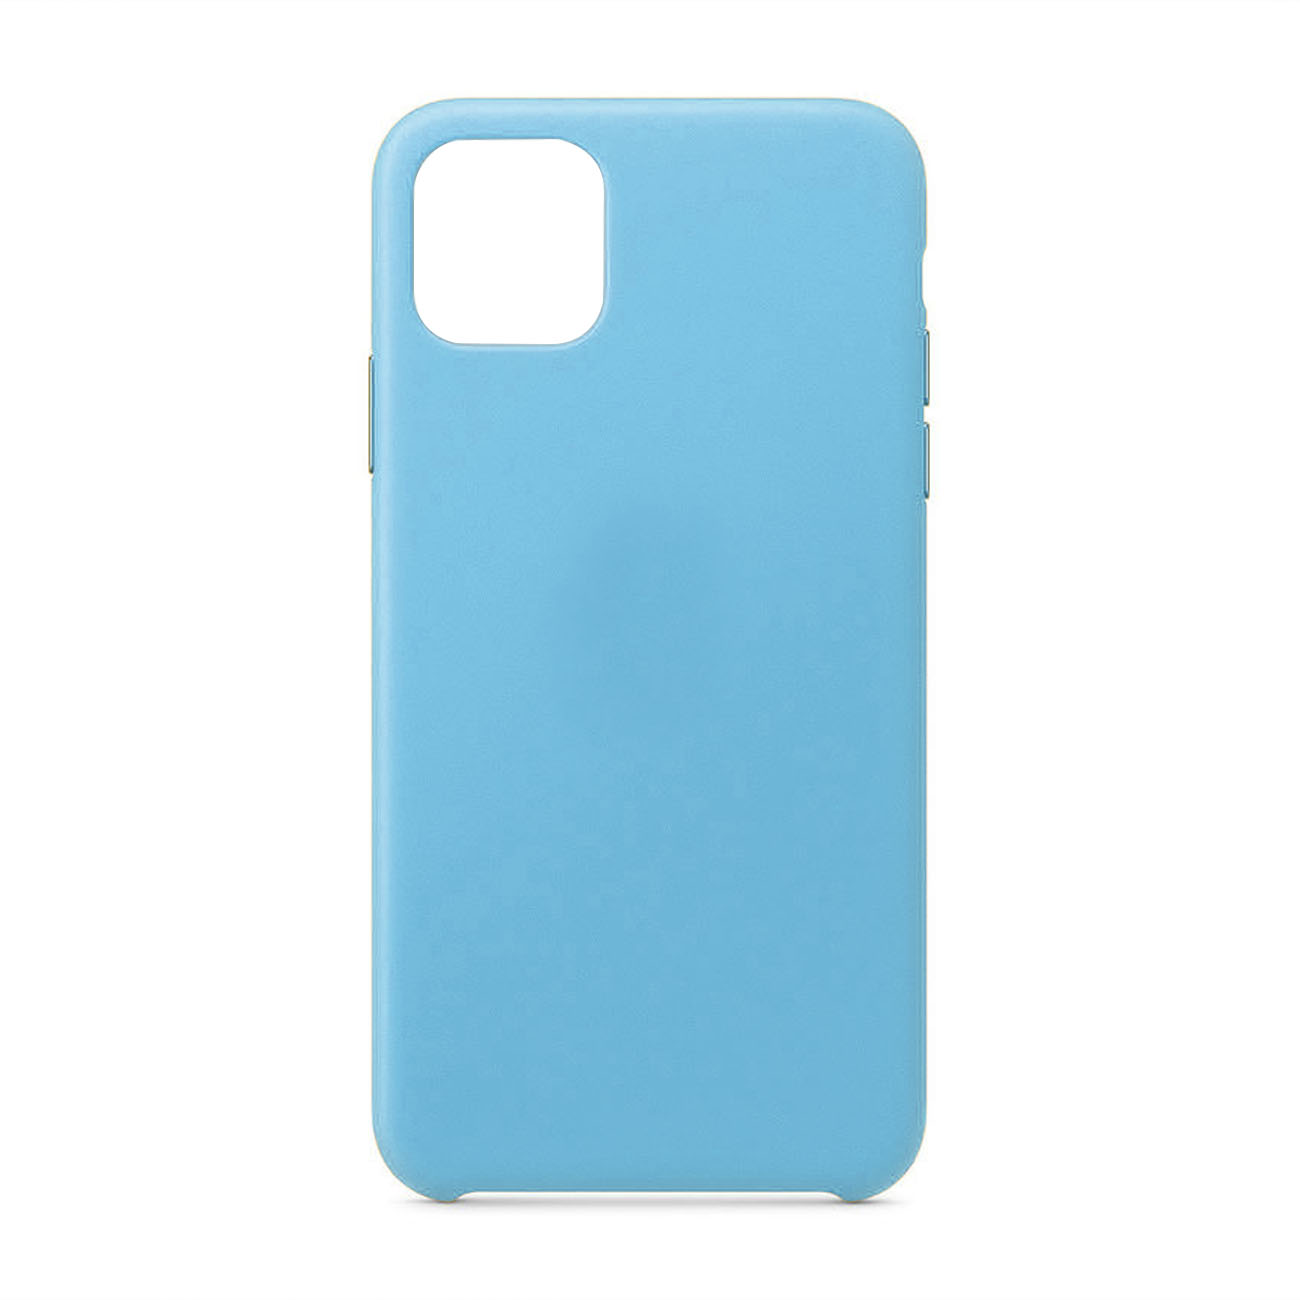 Apple iPhone 11 Pro Max Gummy Cases In Blue